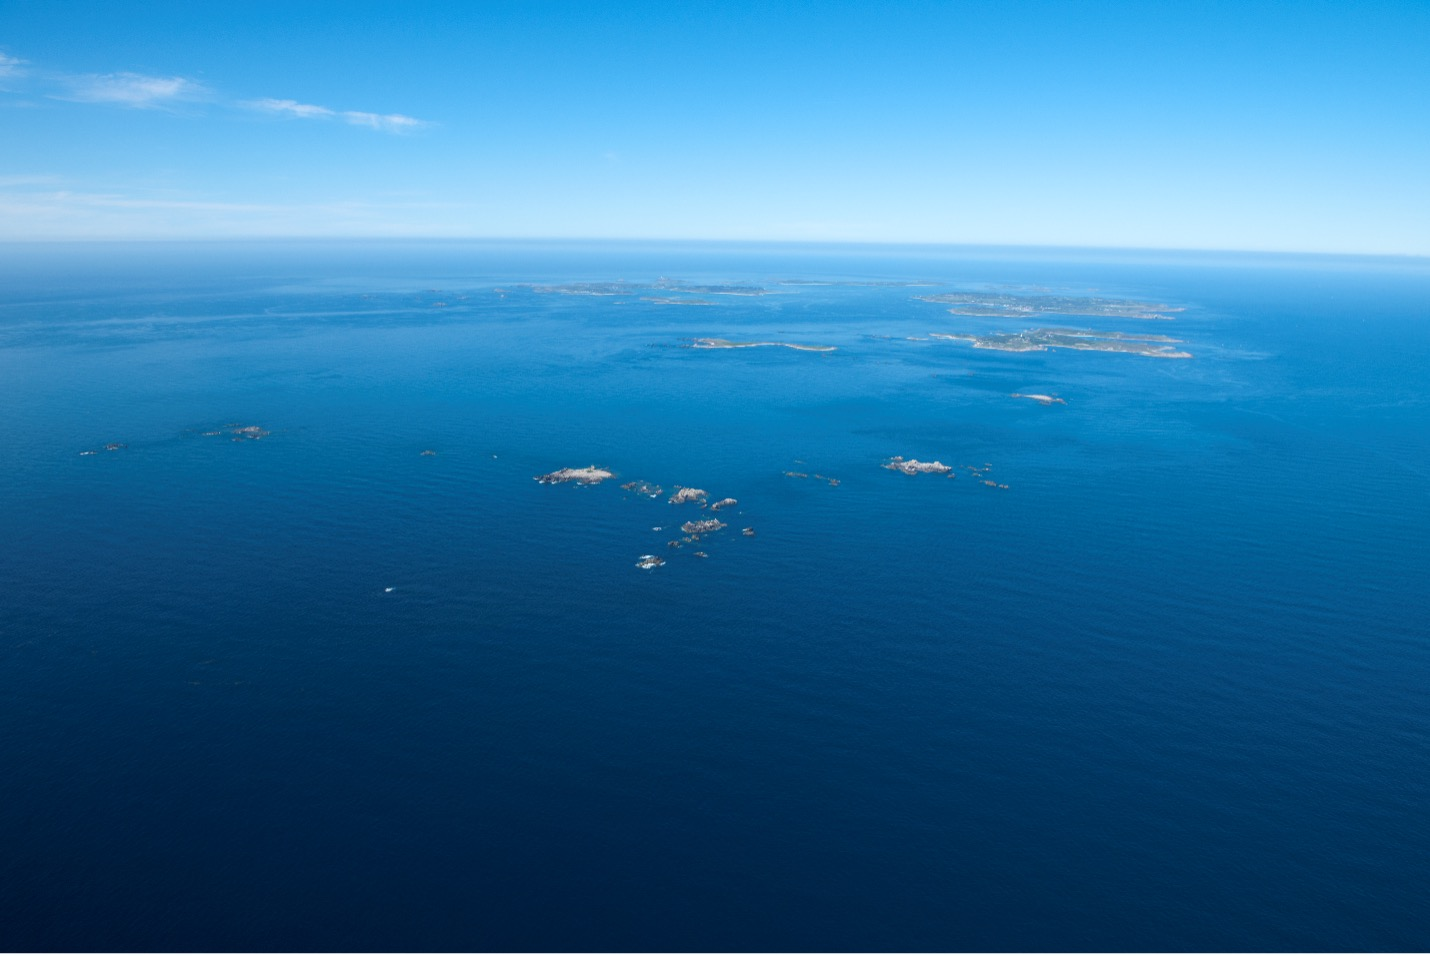 Today's Isles of Scilly from the air: 12,000 years ago this archipelago was one large island